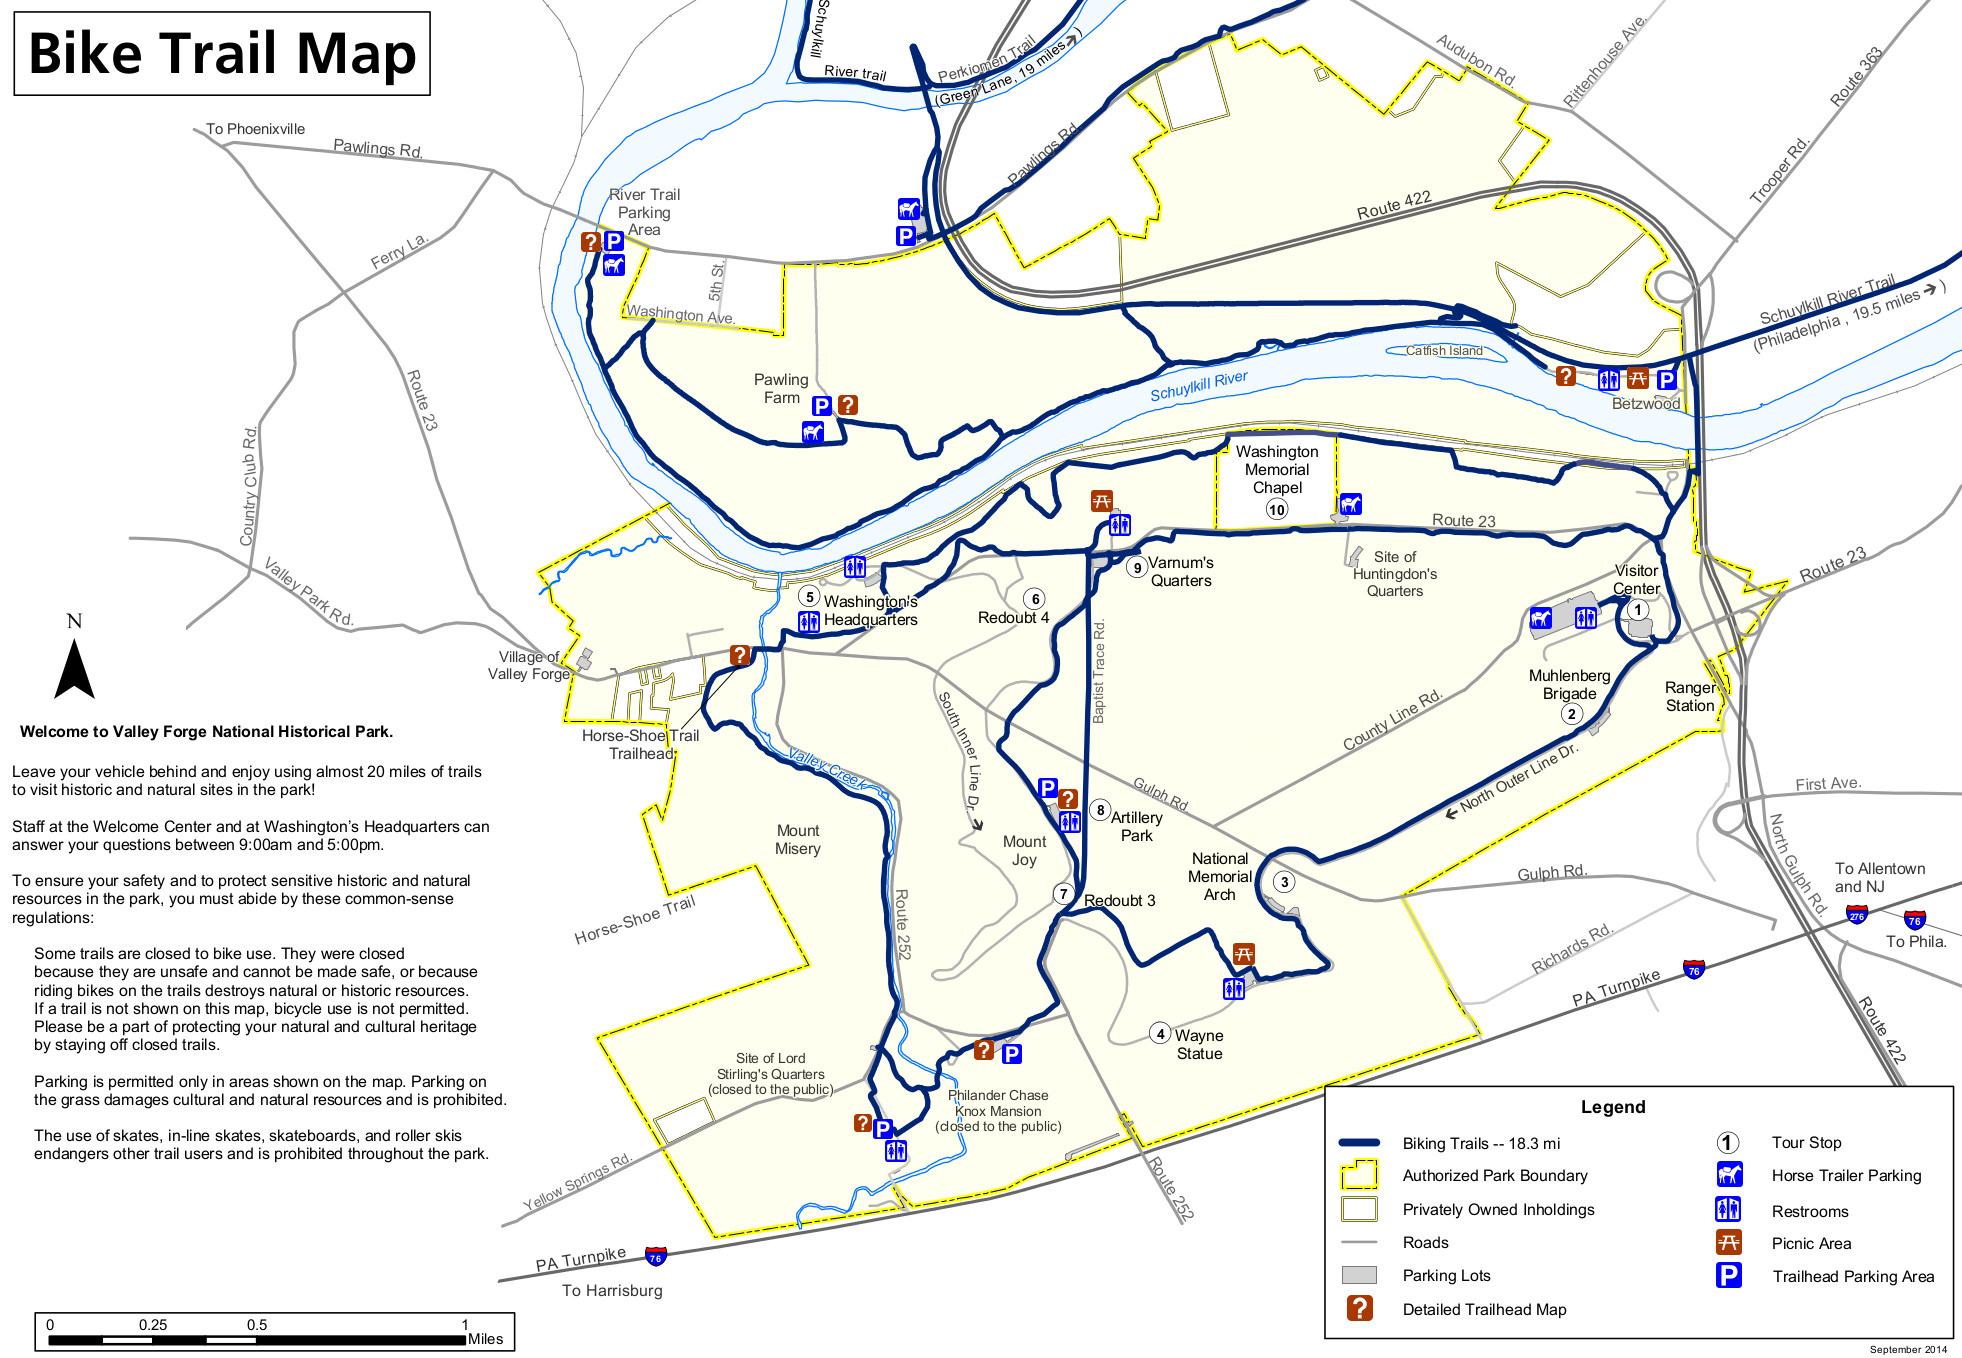 lehigh valley trail map with Valley Forge National Park Mountain Bike Trails on Walking Purchase Salisbury Trails additionally Info Links further Pennsylvania Map Rivers Cities together with Zoo Map h2hFH TFb8ug34oTg3dOD5xHaDQn9rwEpXm UeK67l8 together with The Pinnacle Trail Loop.